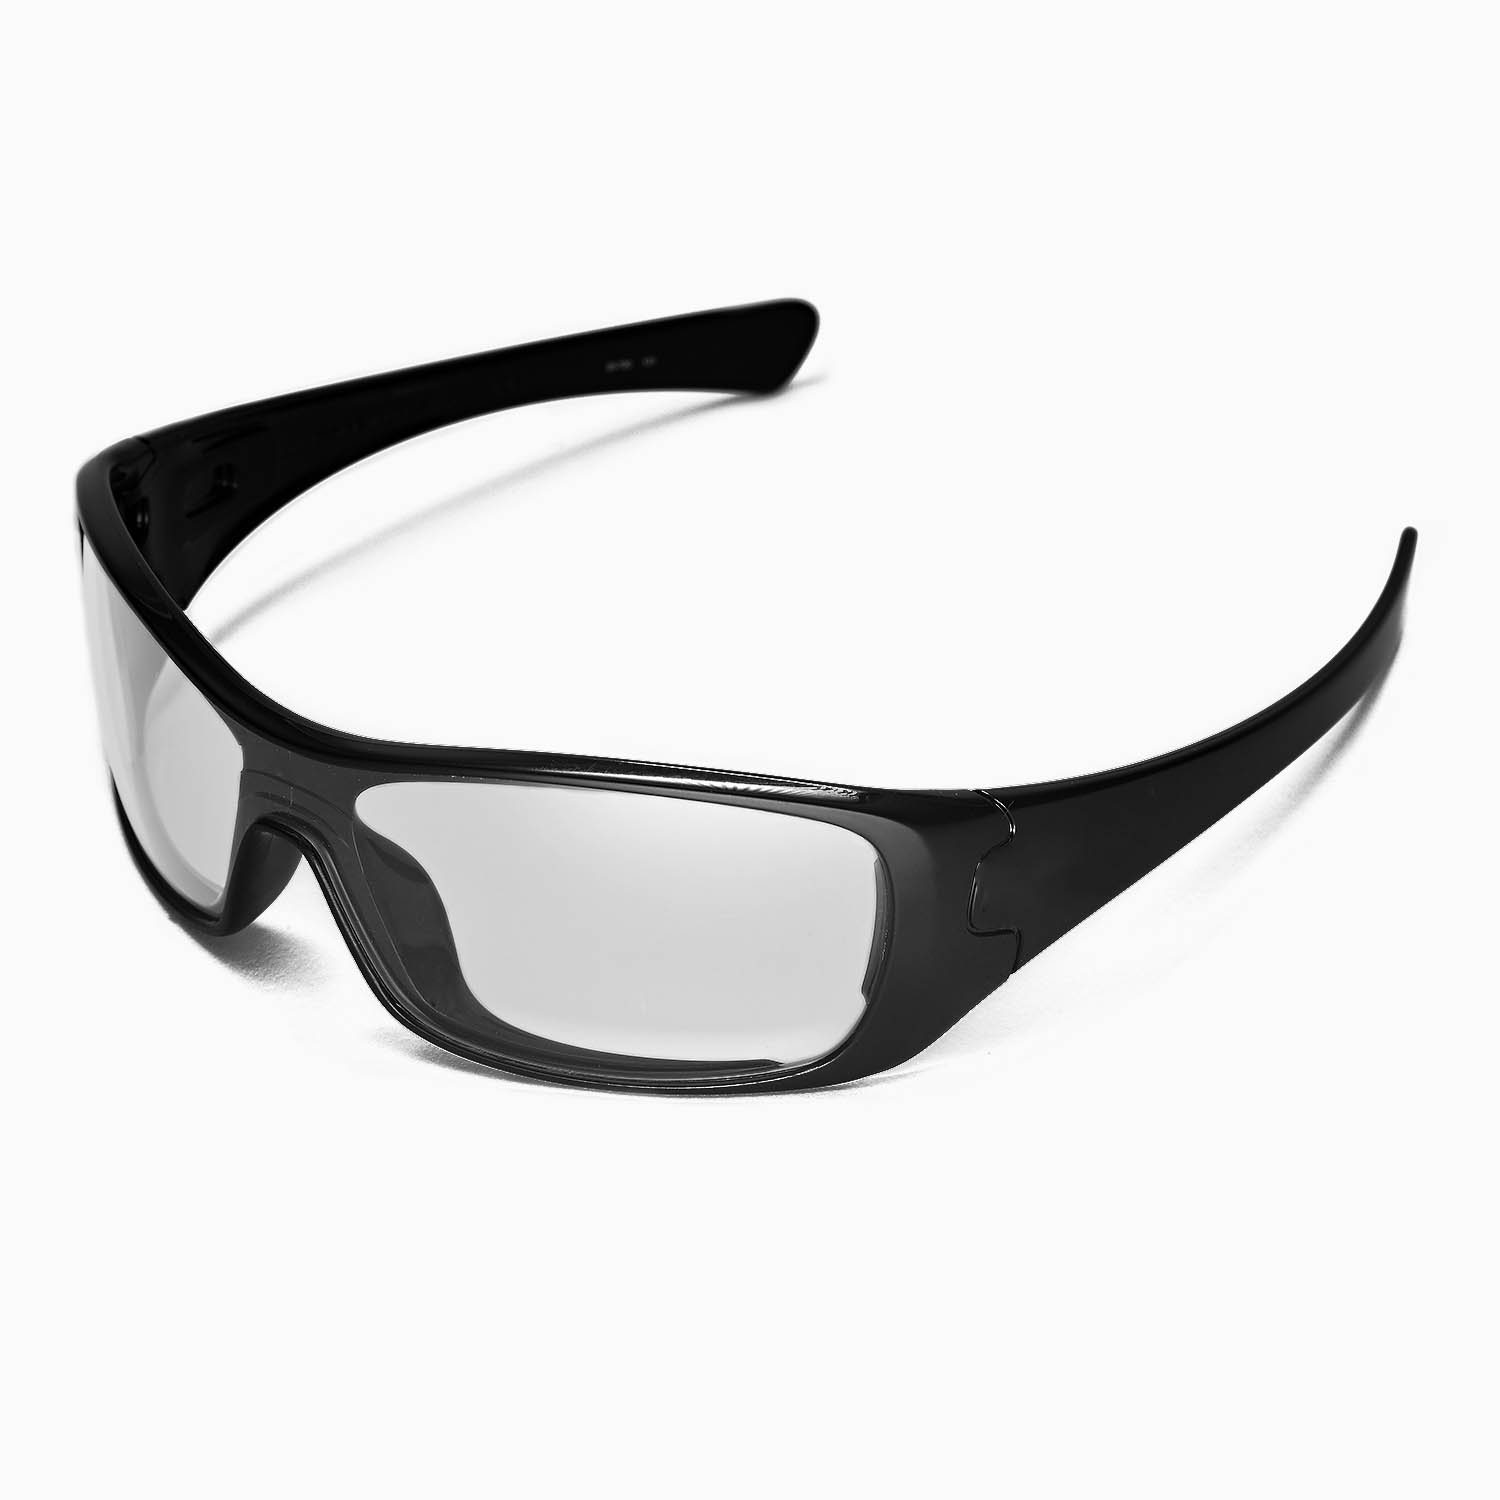 oakley glasses clear lens  new walleva clear lenses for oakley antix